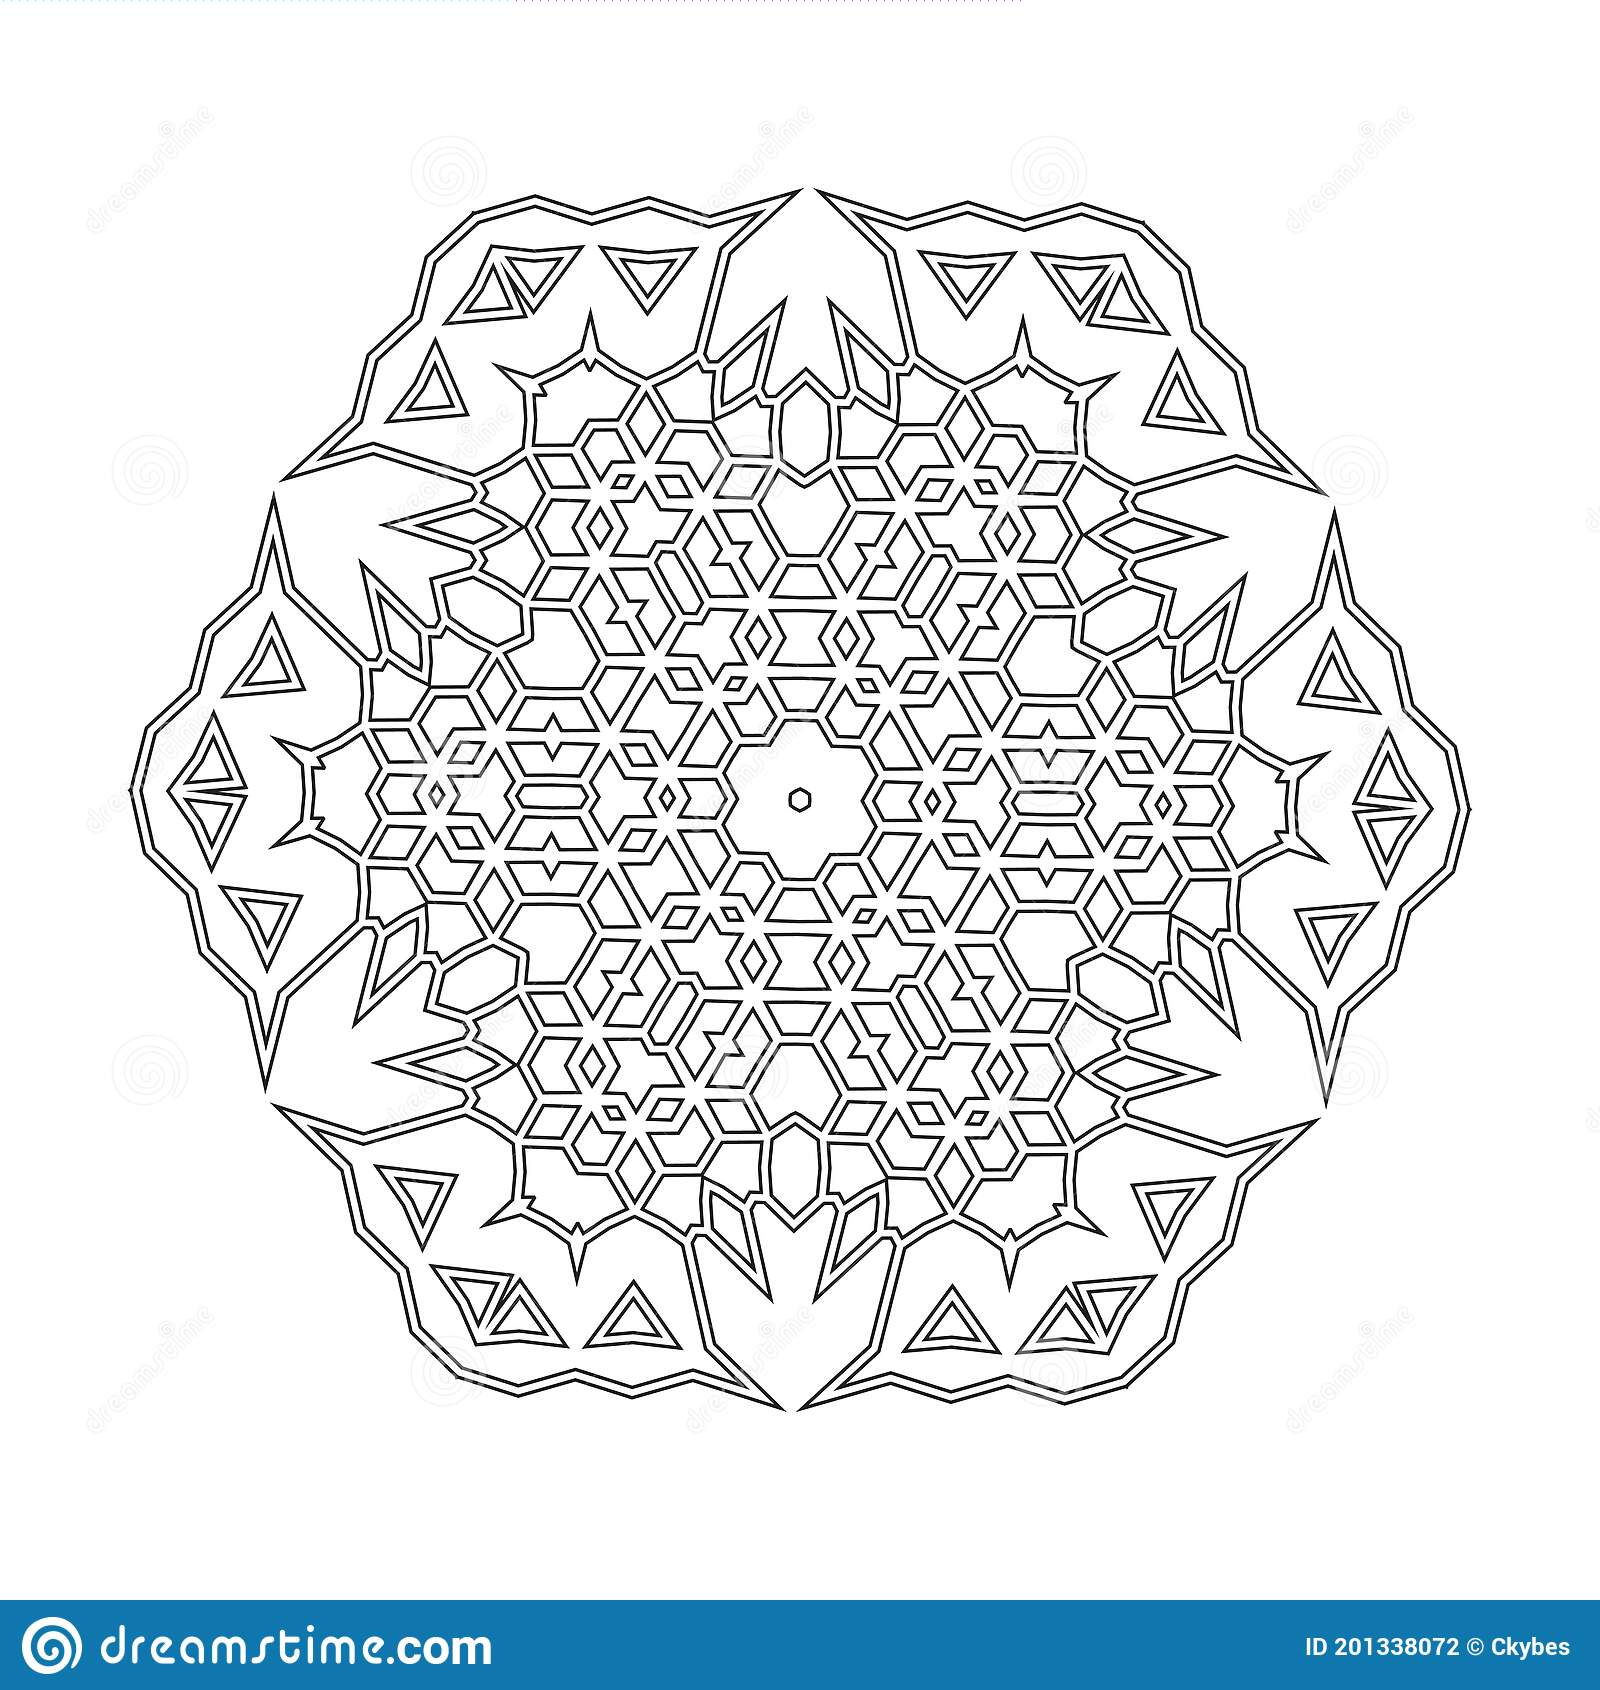 Floral Straight Lined Mandala Trendy Tattoo Template Coloring Pages Stock Vector Illustration Of Flower Star 201338072